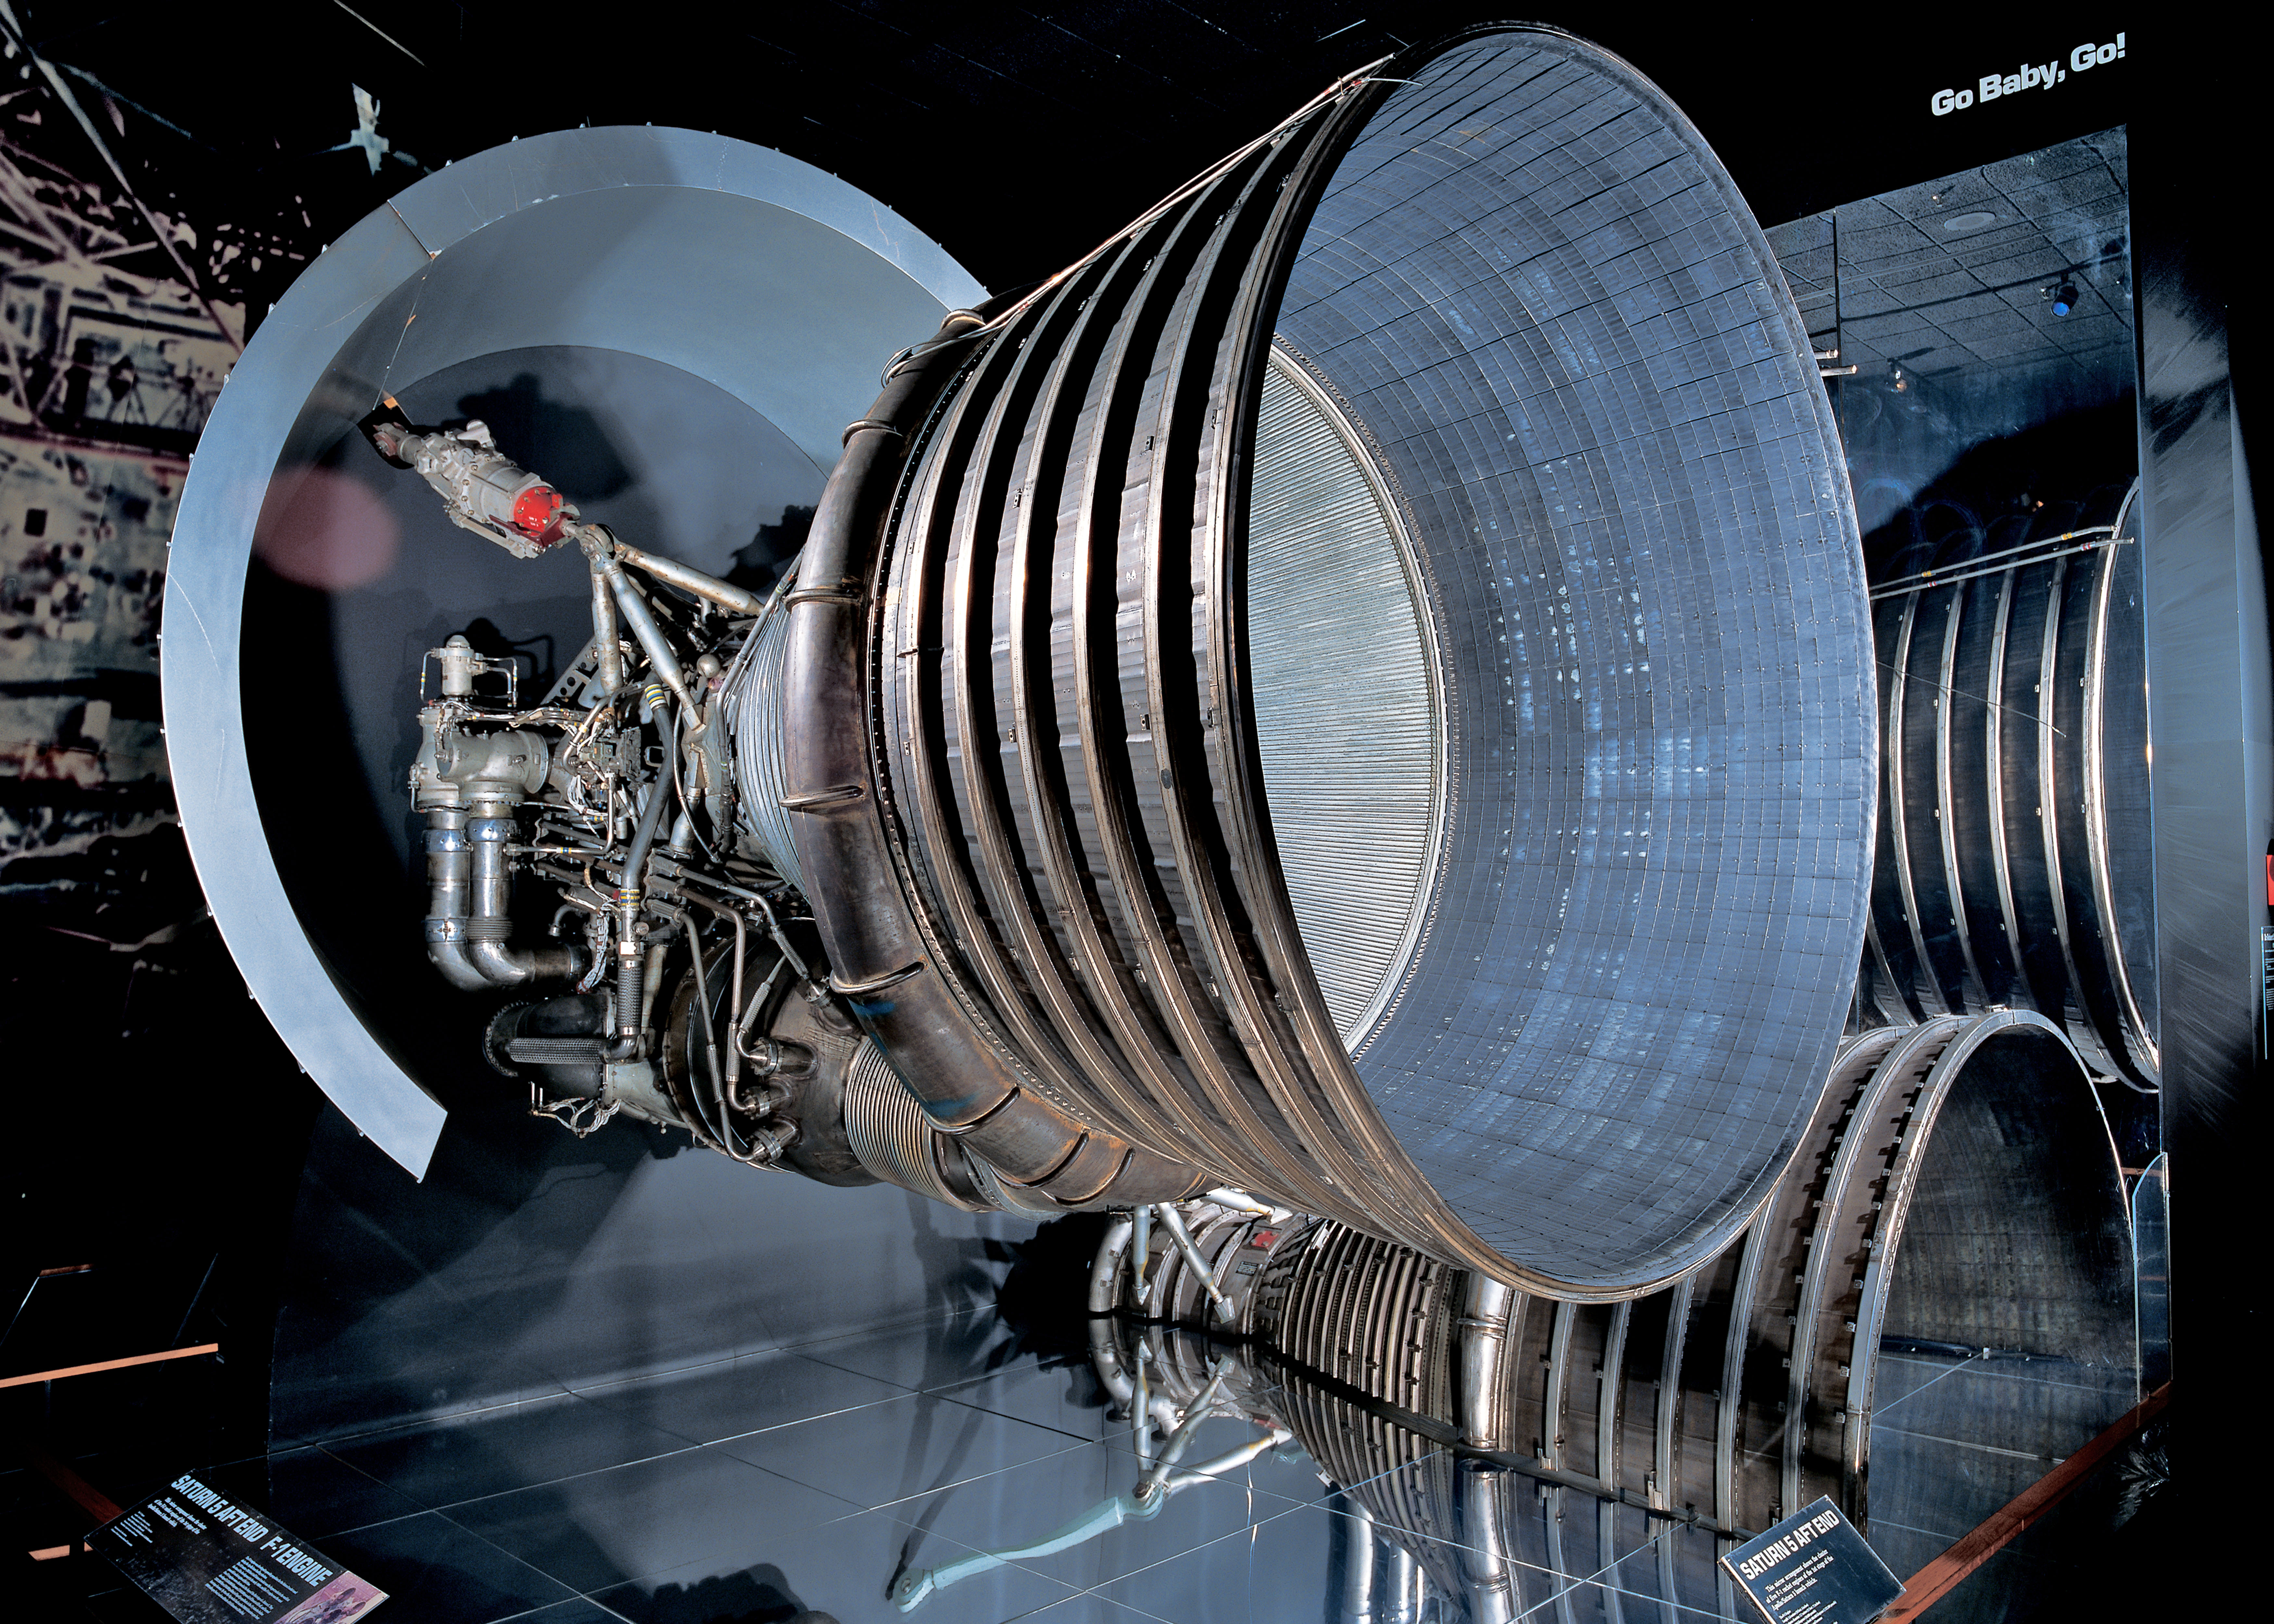 Moon Rocket F 1 Engine Address Db Saturn V F1 Diagram Engines In Apollo To The Zoom On Image